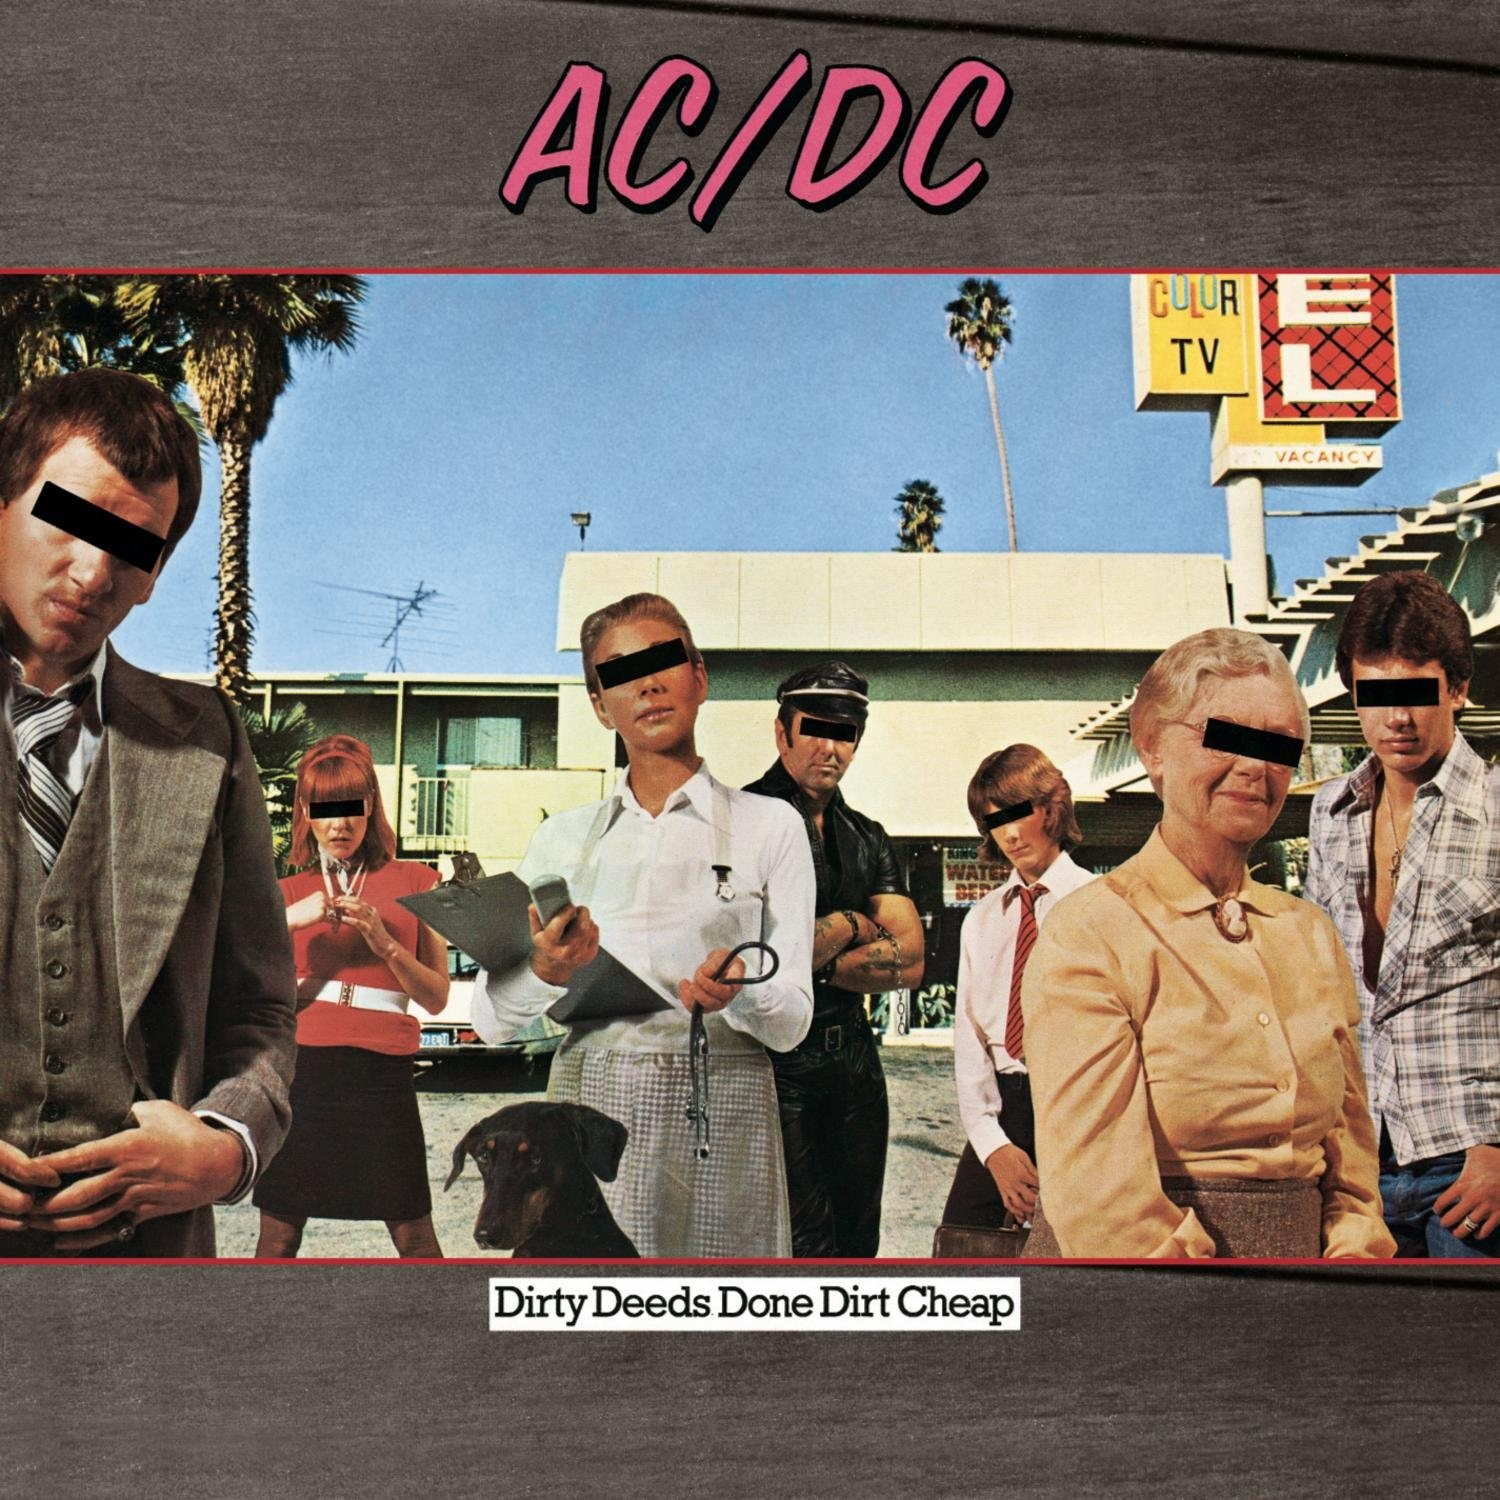 AC/DC - 'Dirty Deeds Done Dirt Cheap' - Released September 20, 1976.